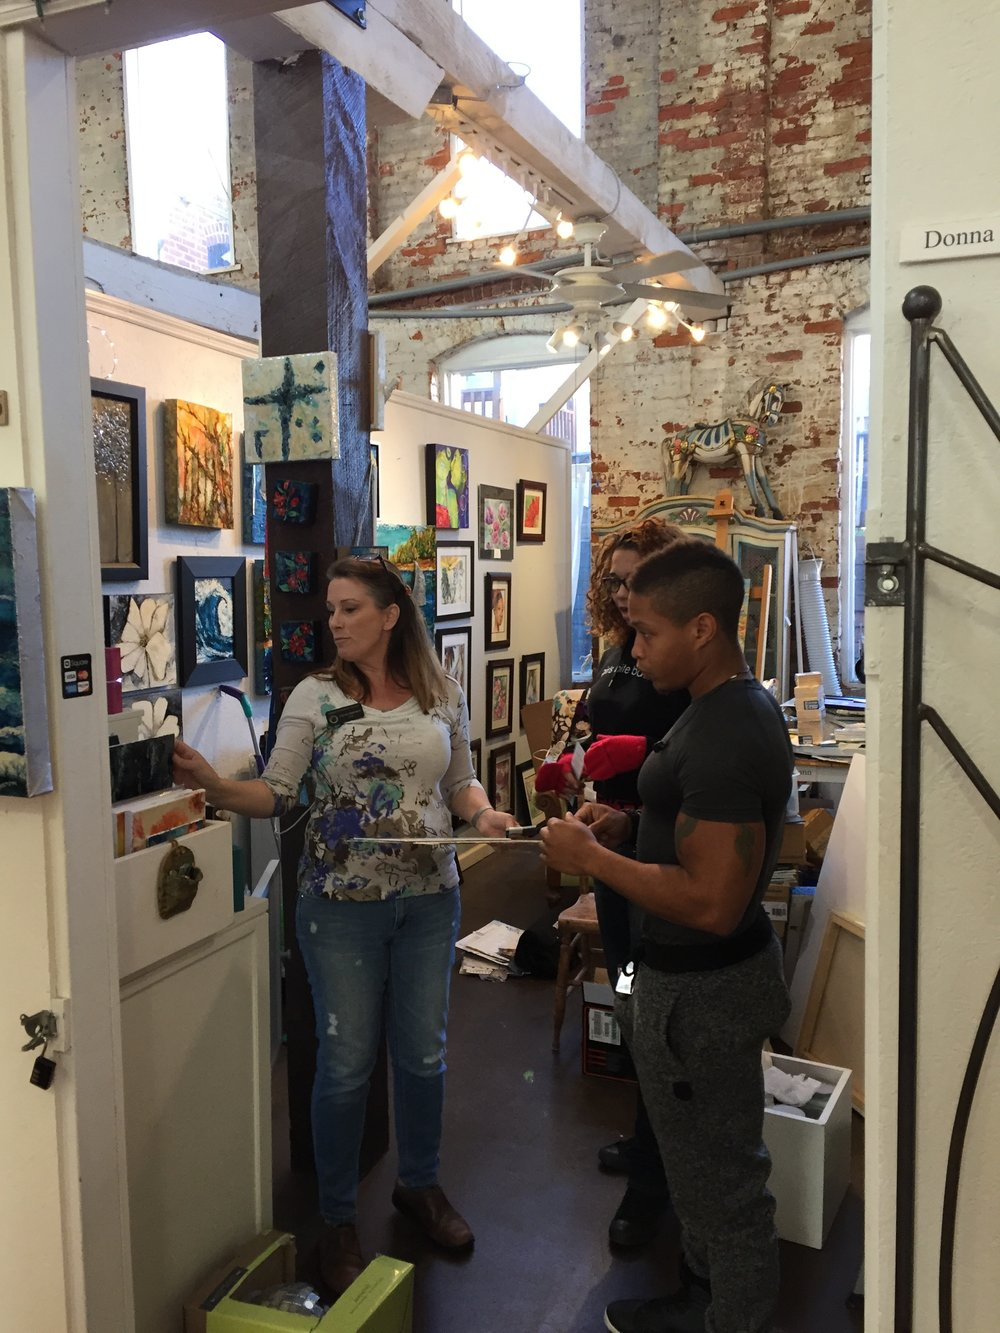 Donna Jassman helping visitors pick out a piece of her work during open studios